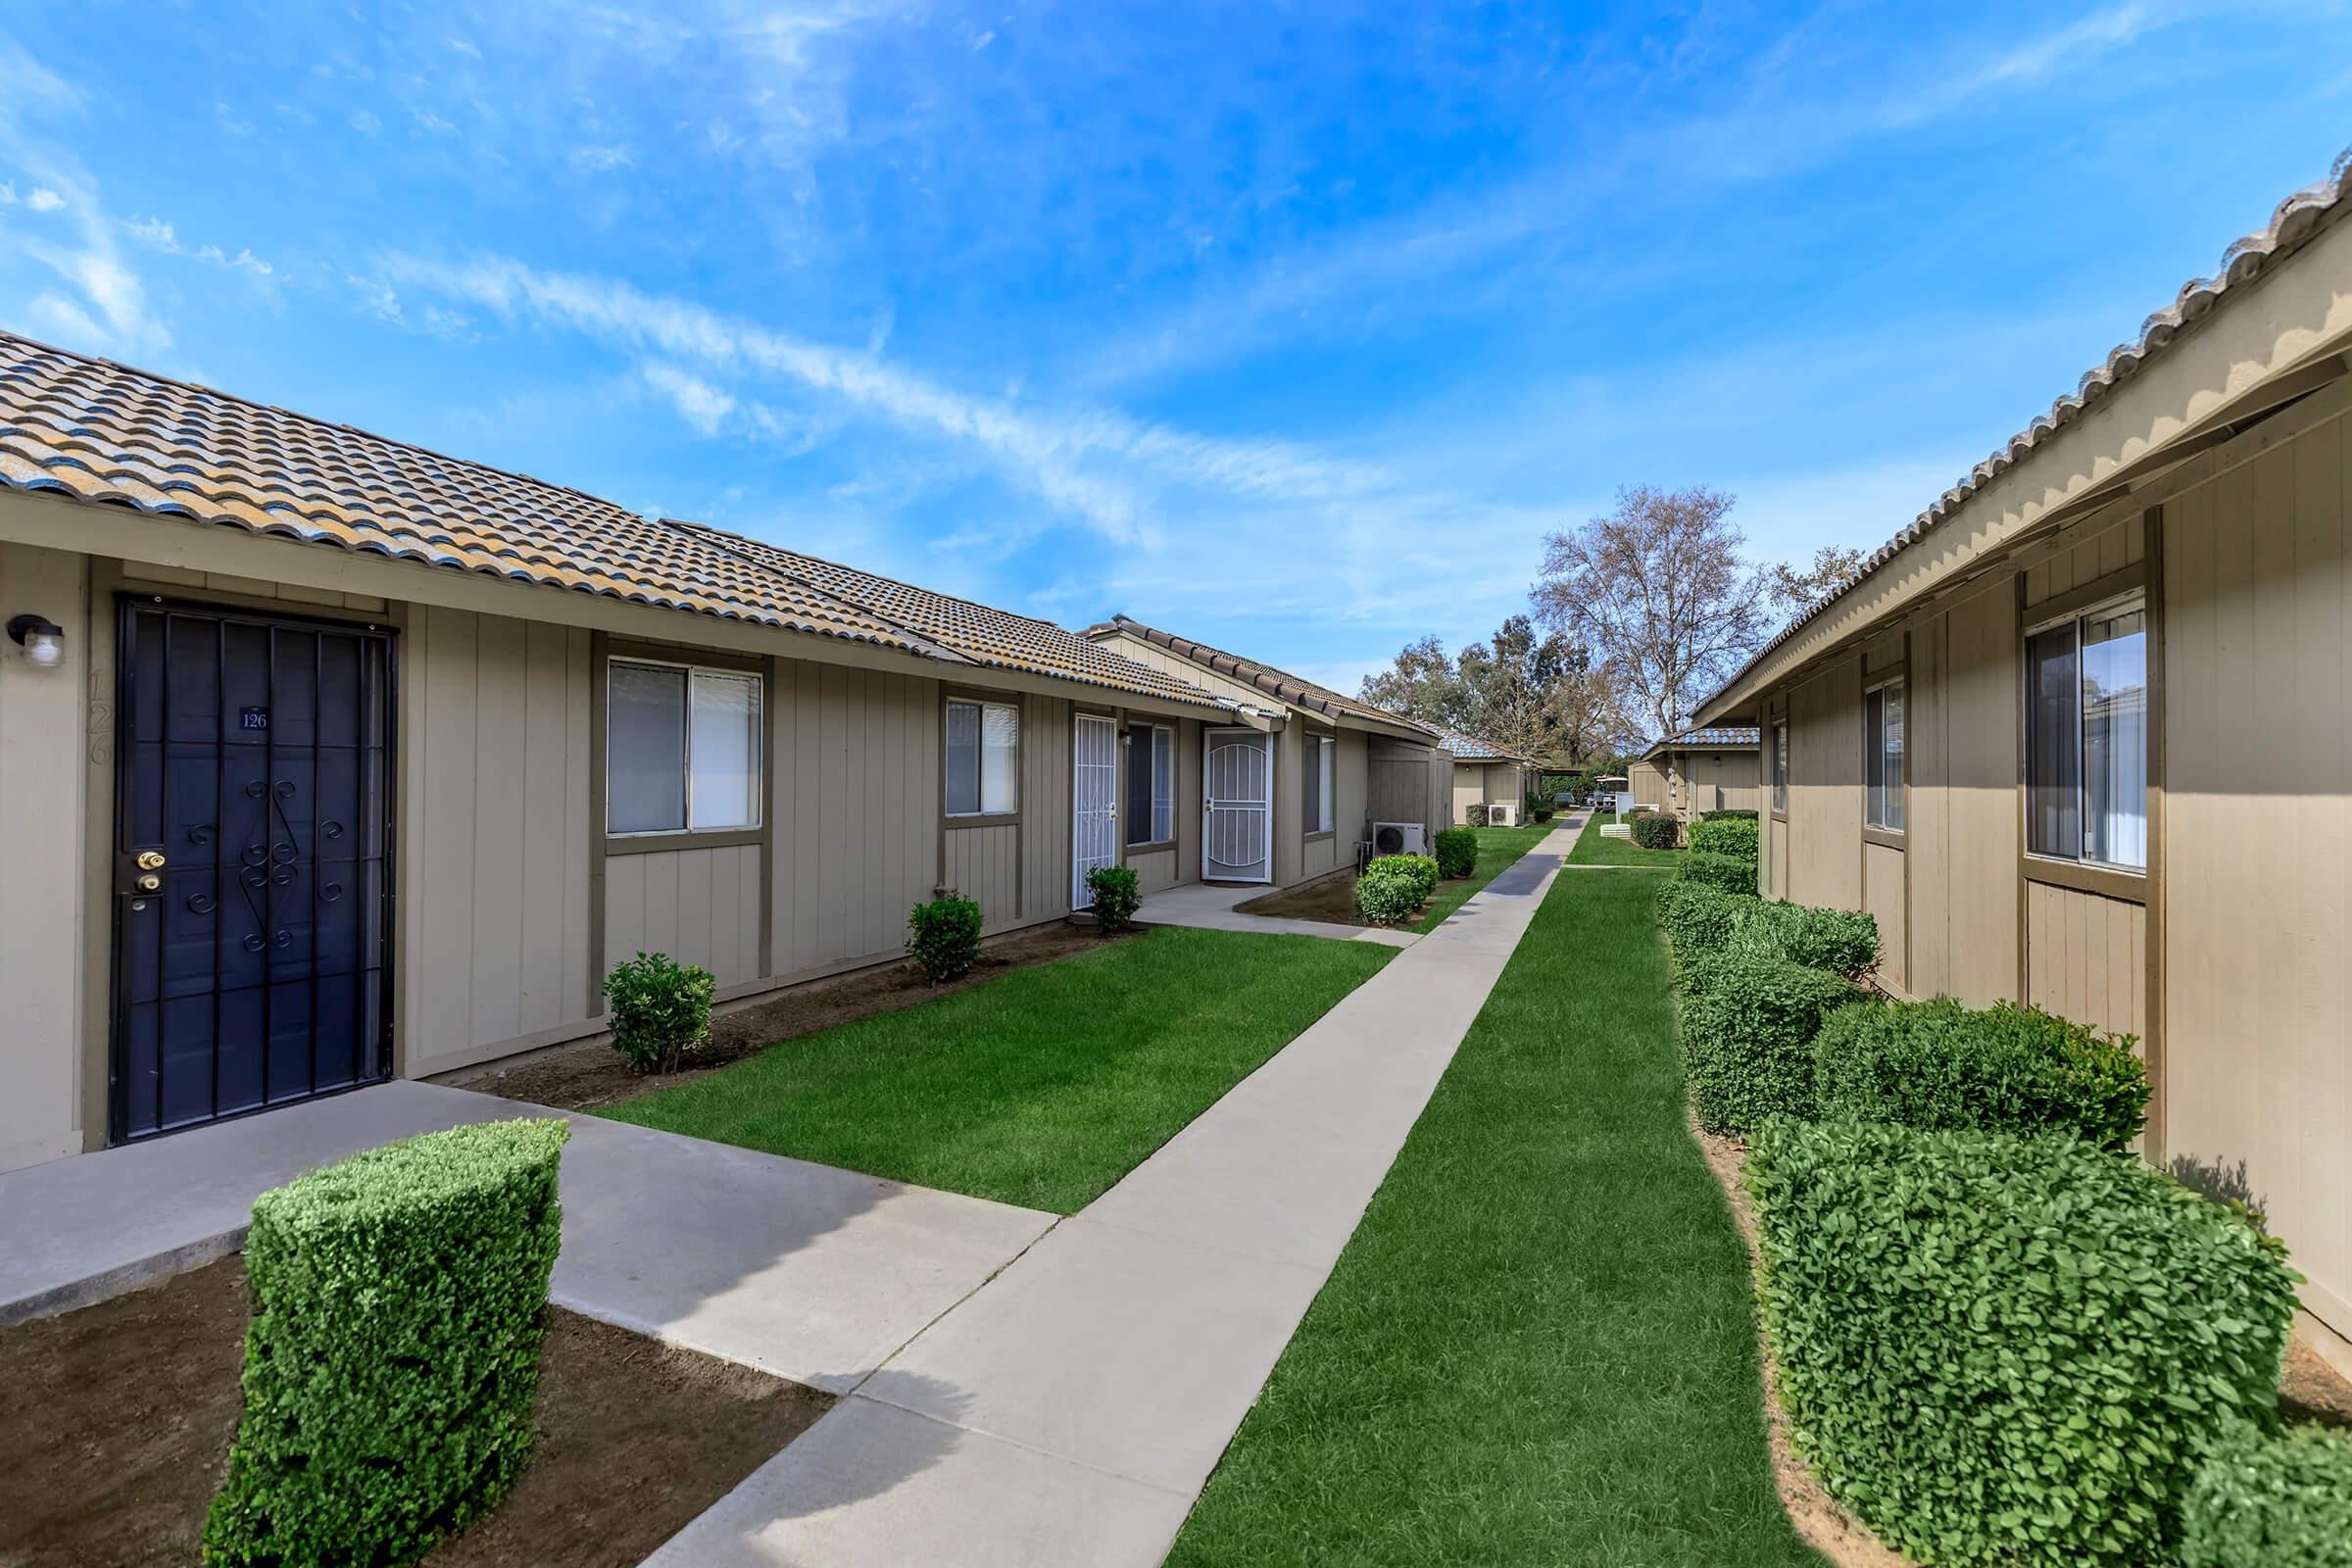 THE PATH TO YOUR NEW HOME AT SANDPIPER POINT APARTMENTS